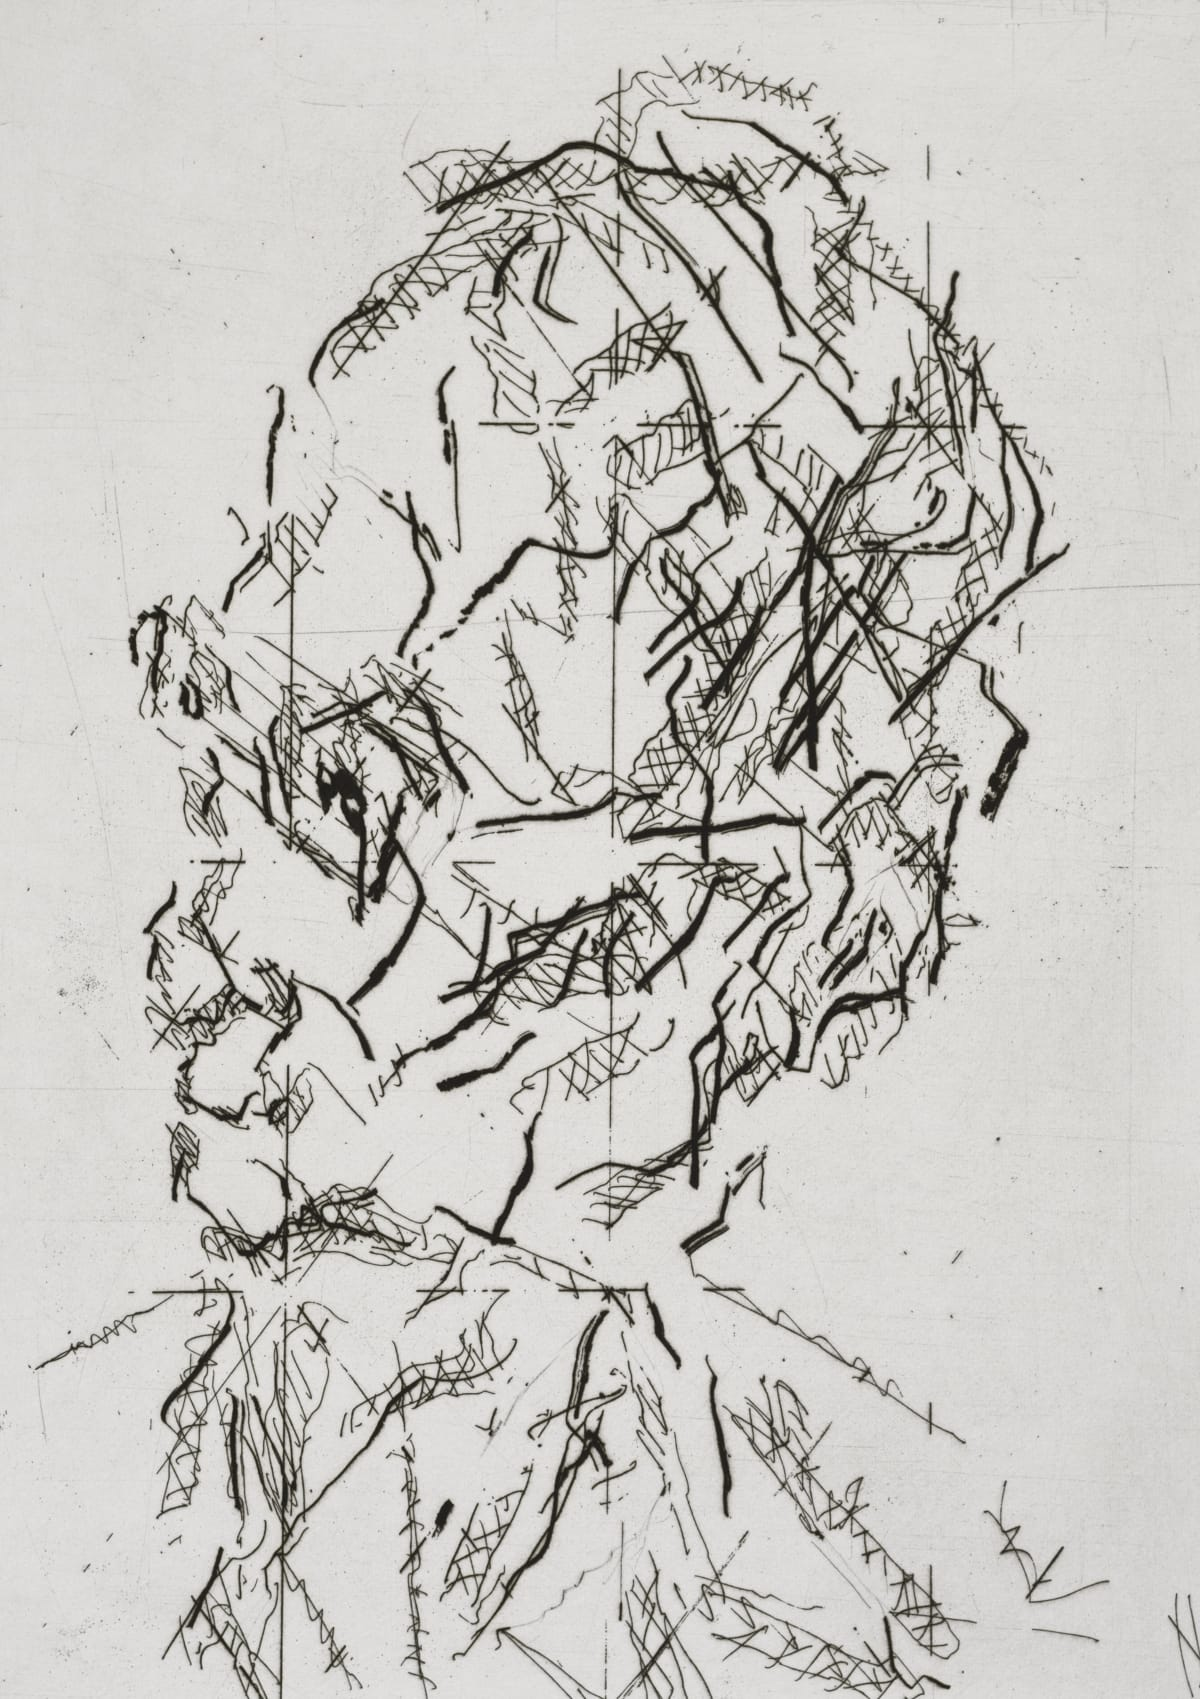 Frank Auerbach William Feaver, 2007 Etching and aquatint with engraving Sheet size: 63 x 50 cm / 24.8 x 19.7 in Framed size: 72.5 x 60 cm / 28.5 x 23.5 in 25/50 Signed, numbered and titled